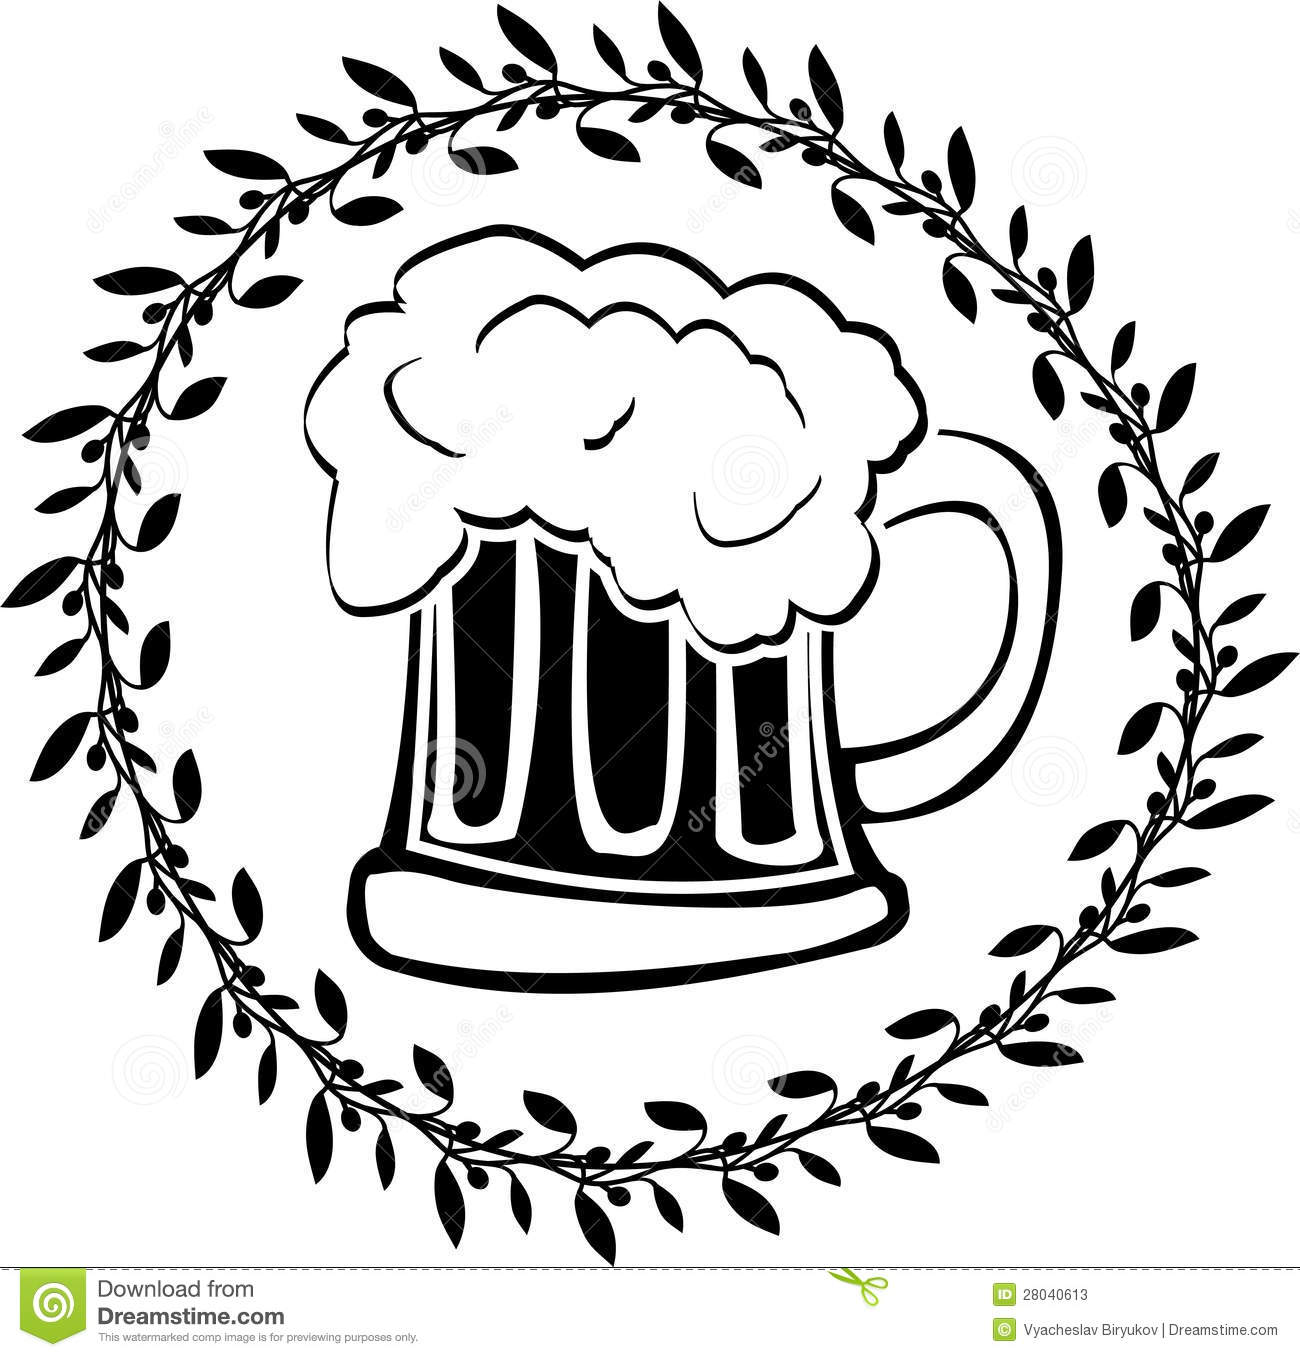 Stencil Of Glass Of Beer Stock Vector Illustration Of